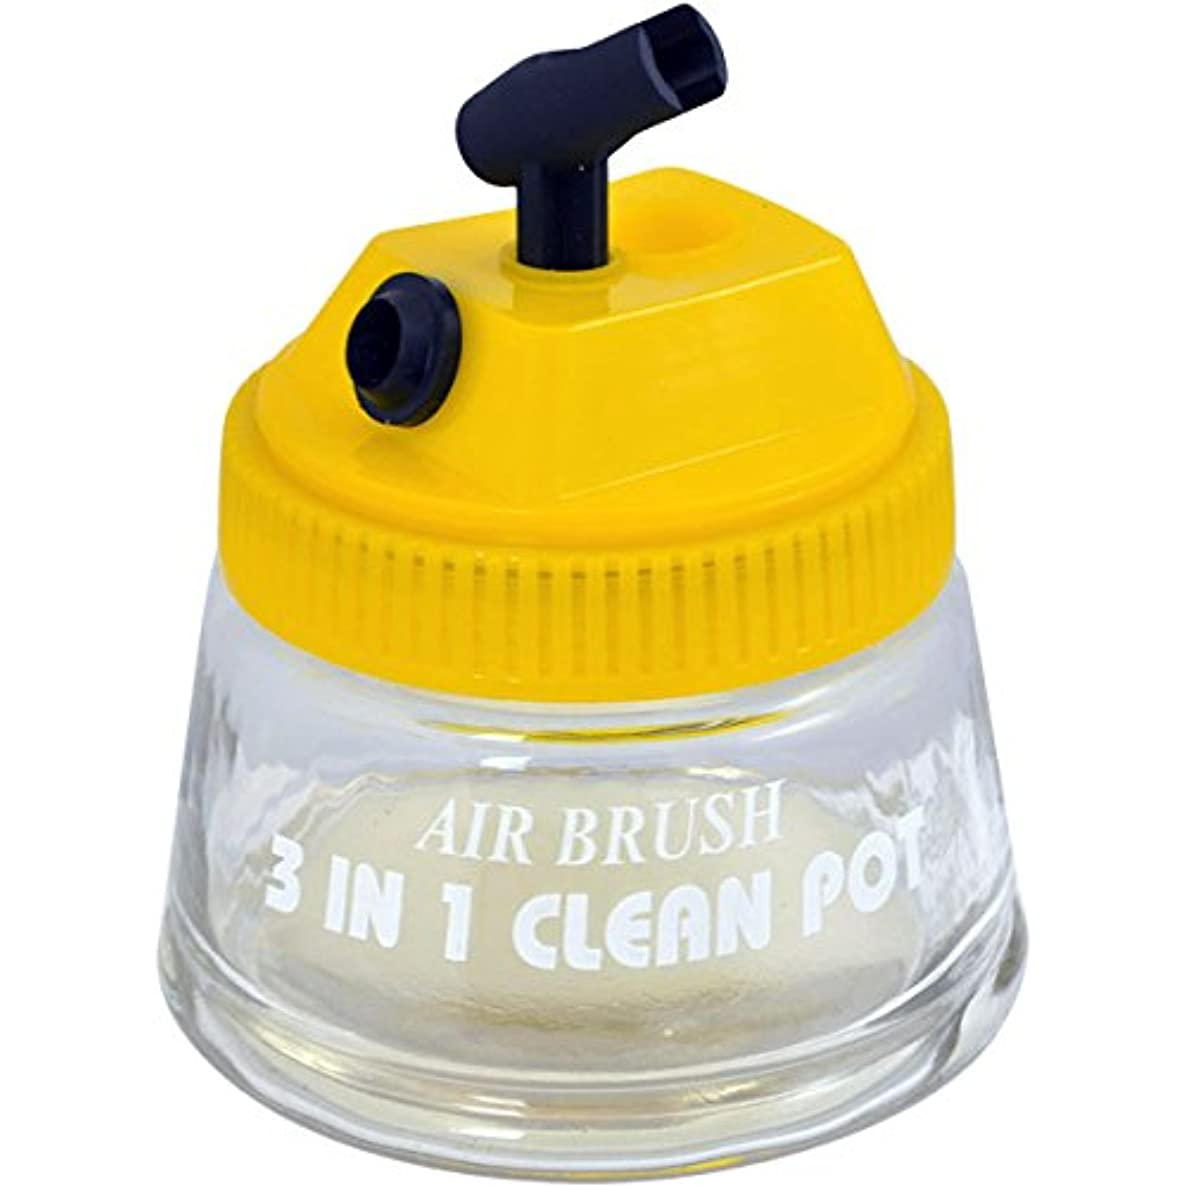 Master Airbrush 3-in-1 Cleaning Pot with Holder; Cleans and Holds Airbrush, Color Palette Lid